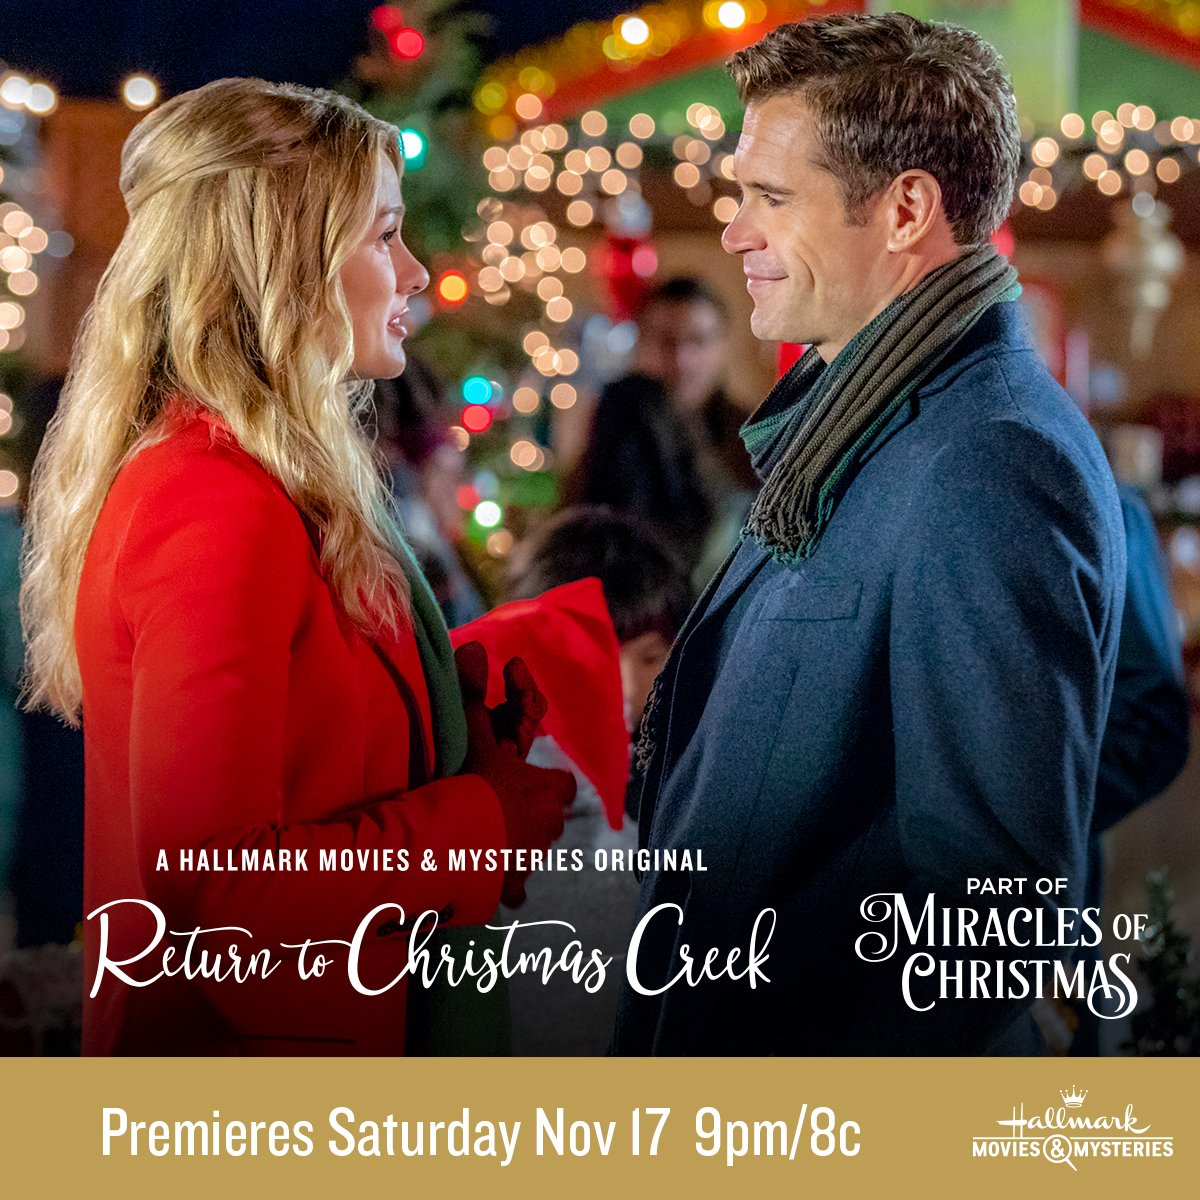 Okay...I just have to say that @toriandersona and @stephenhuszar have great chemistry! A perfect @hallmarkmovie couple! #ReturnToChristmasCreek #MiraclesOfChristmas #HallmarkPartner